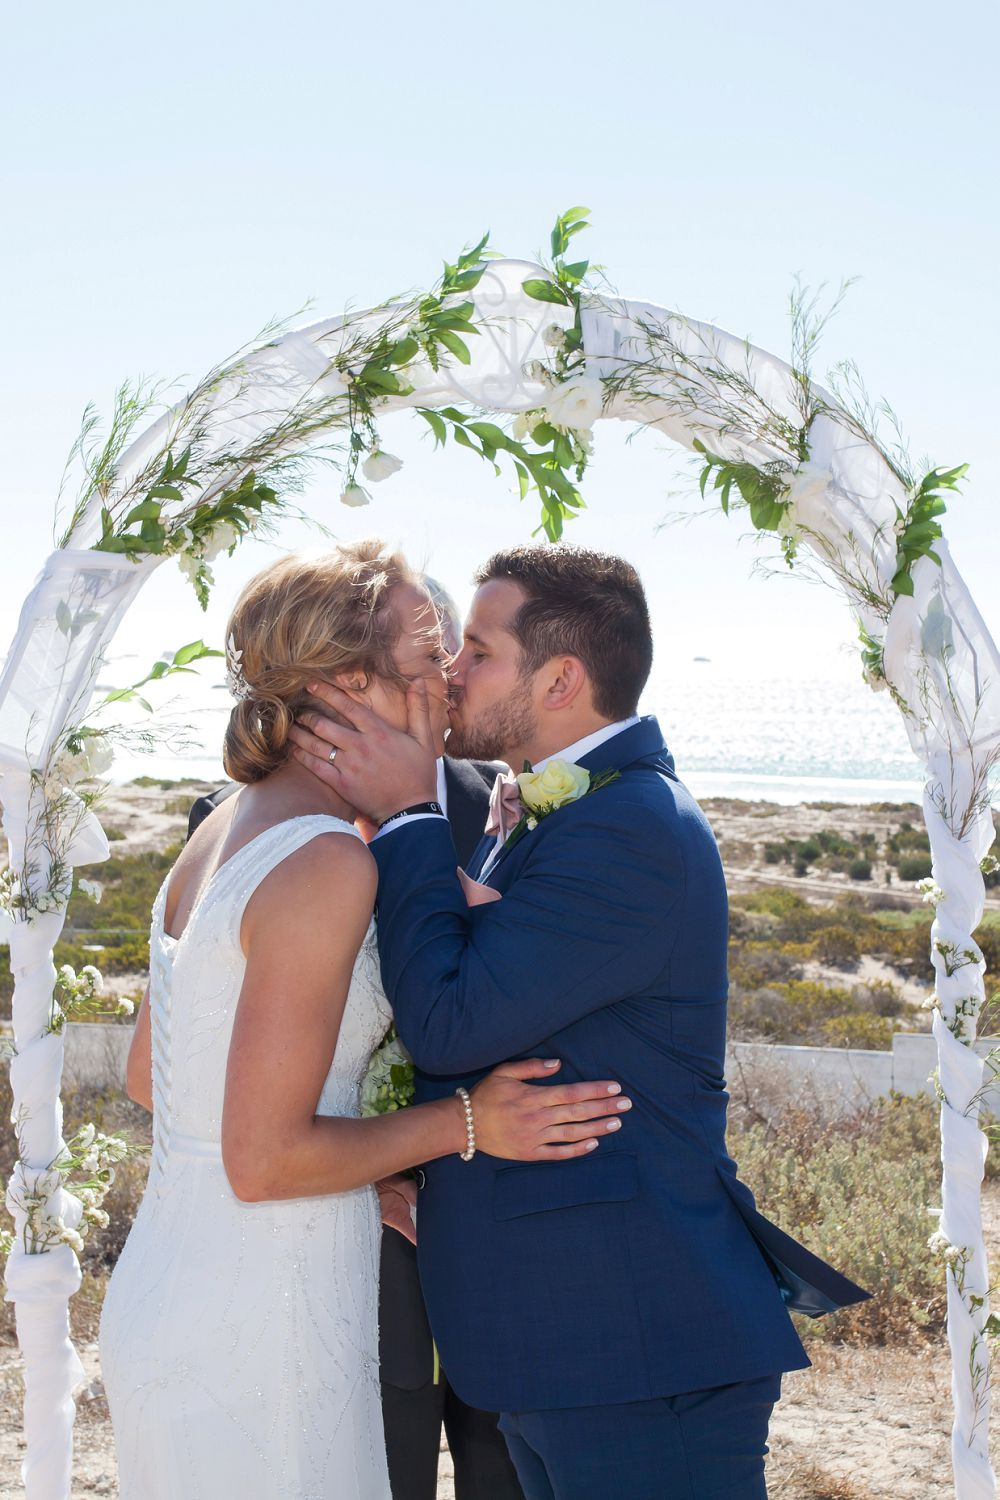 Paternoster Wedding Expressions Photography Cape Town Wedding Photographers 051